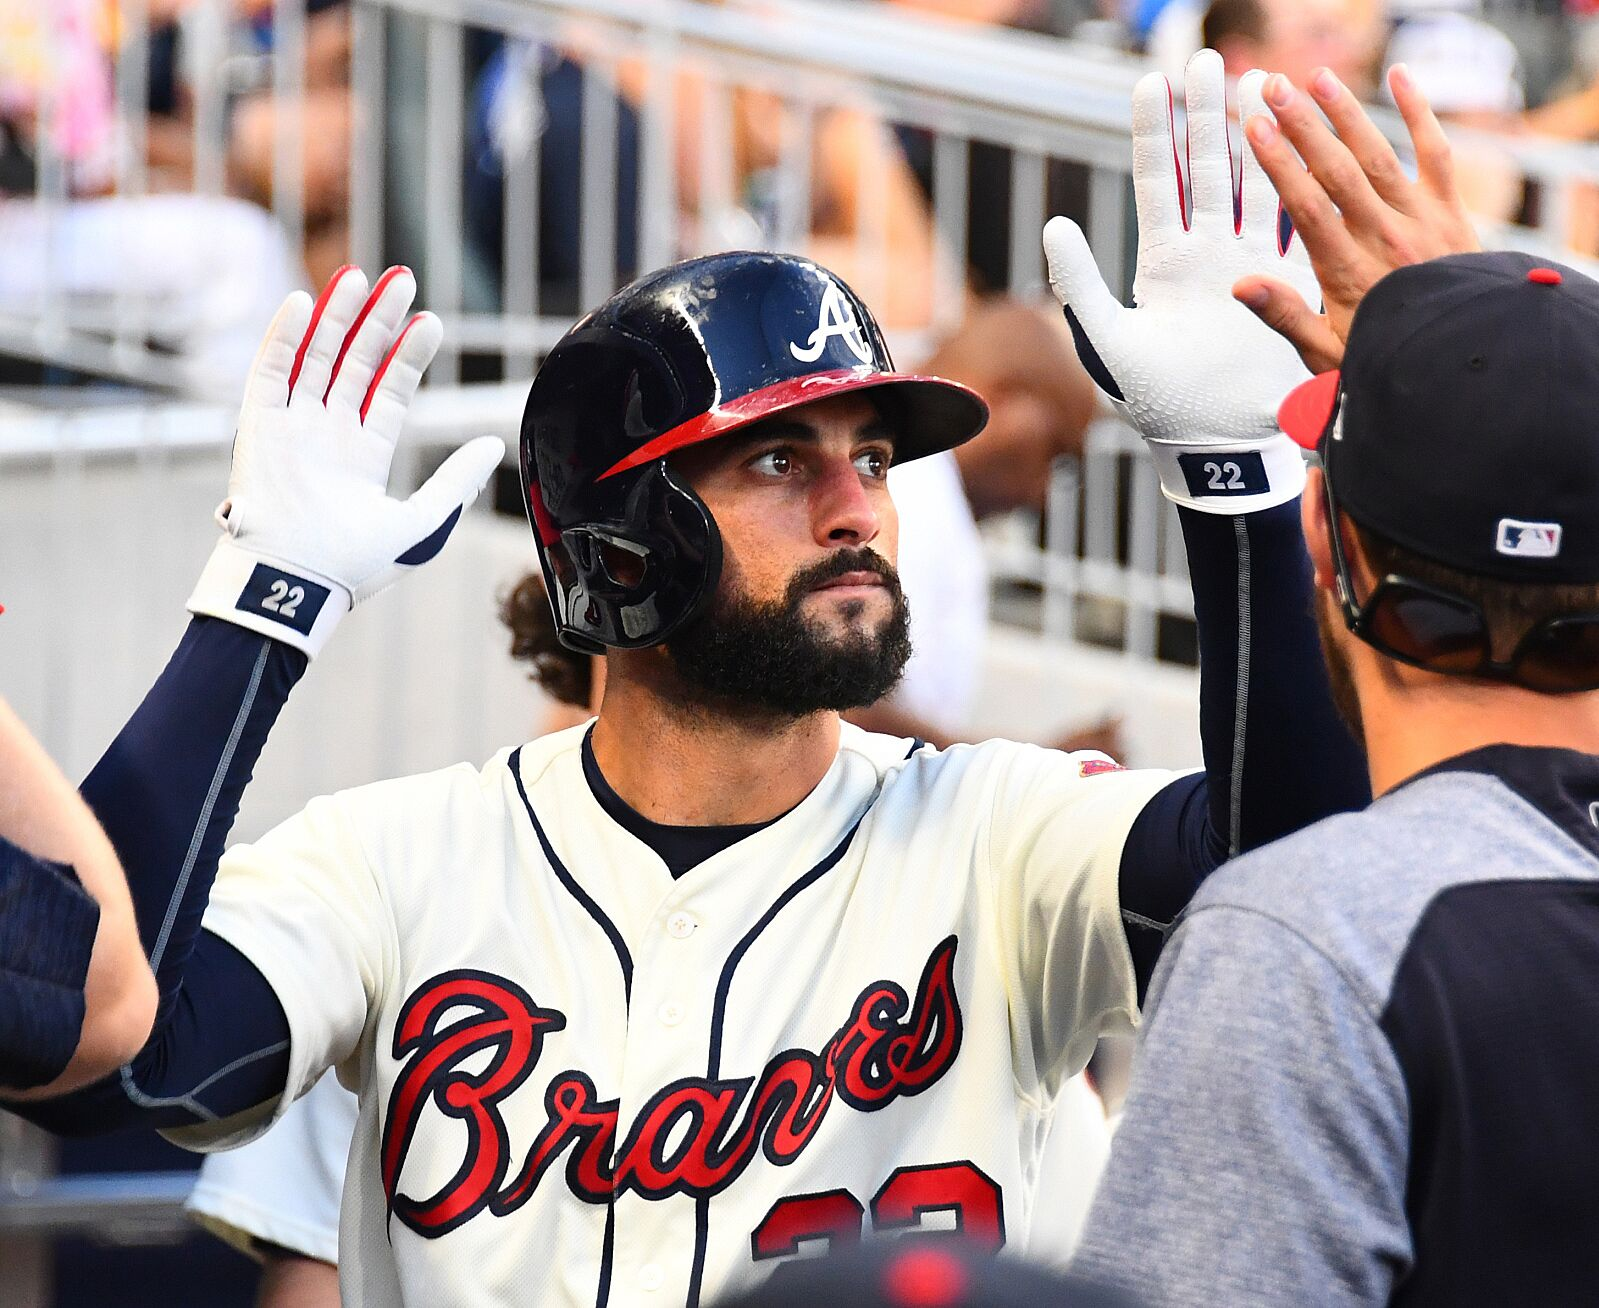 Will Nick Markakis be the next Atlanta Braves Hall of Famer?